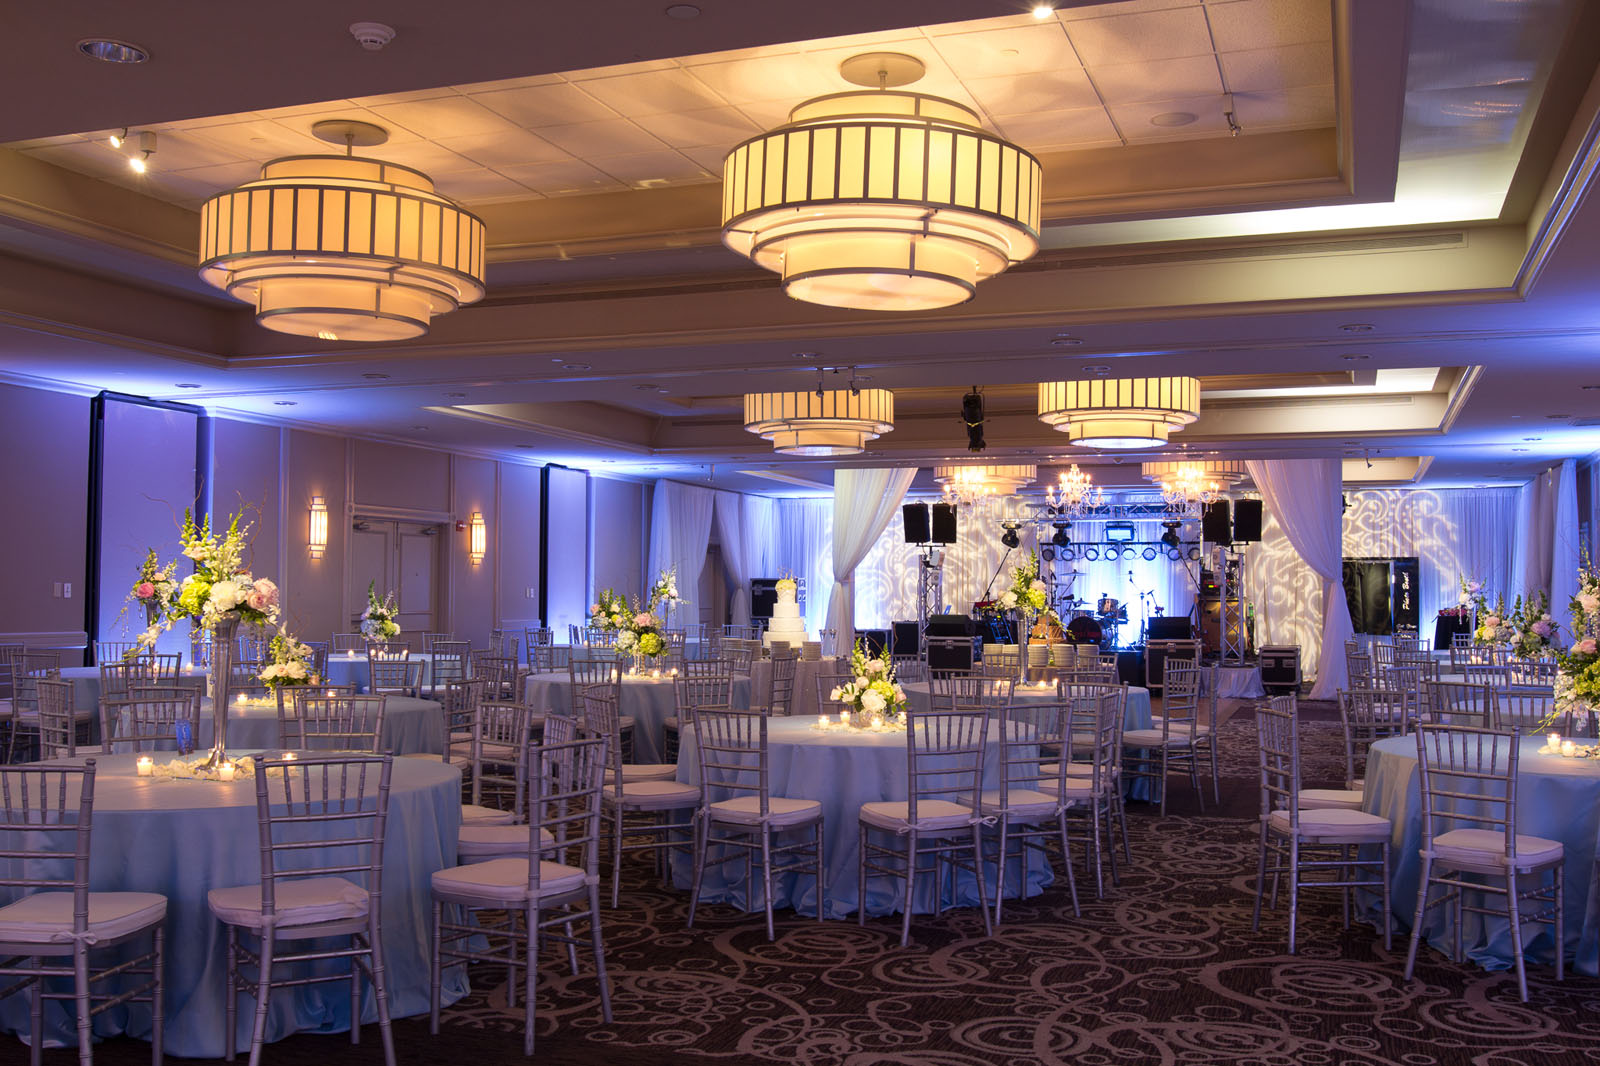 Hotel Capstone wedding venue